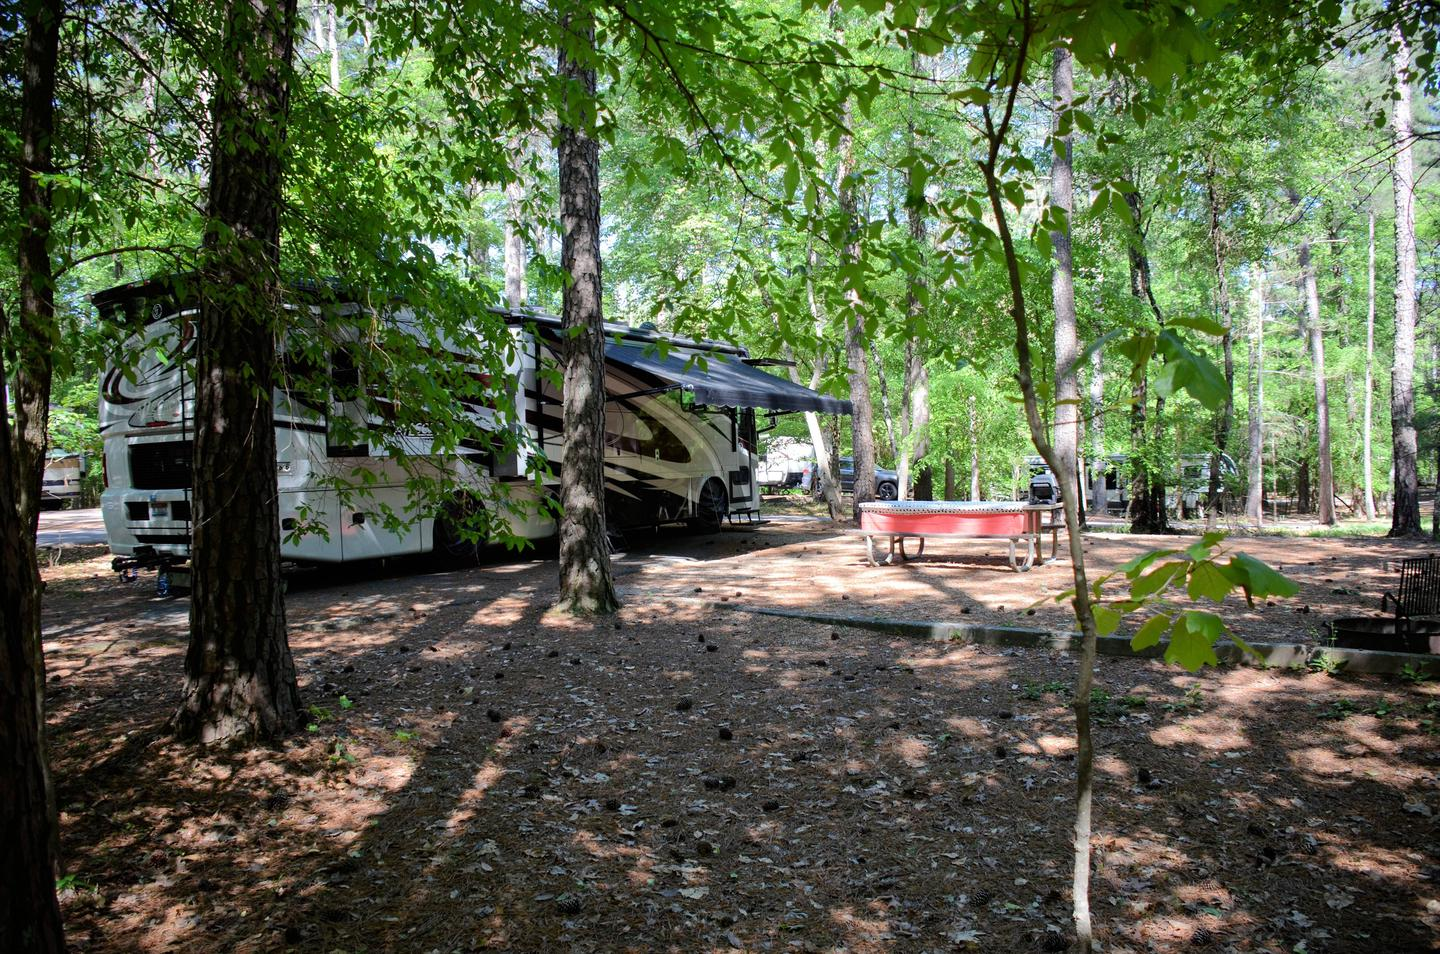 Awning clearance, amenities.McKinney Campground, campsite 62.